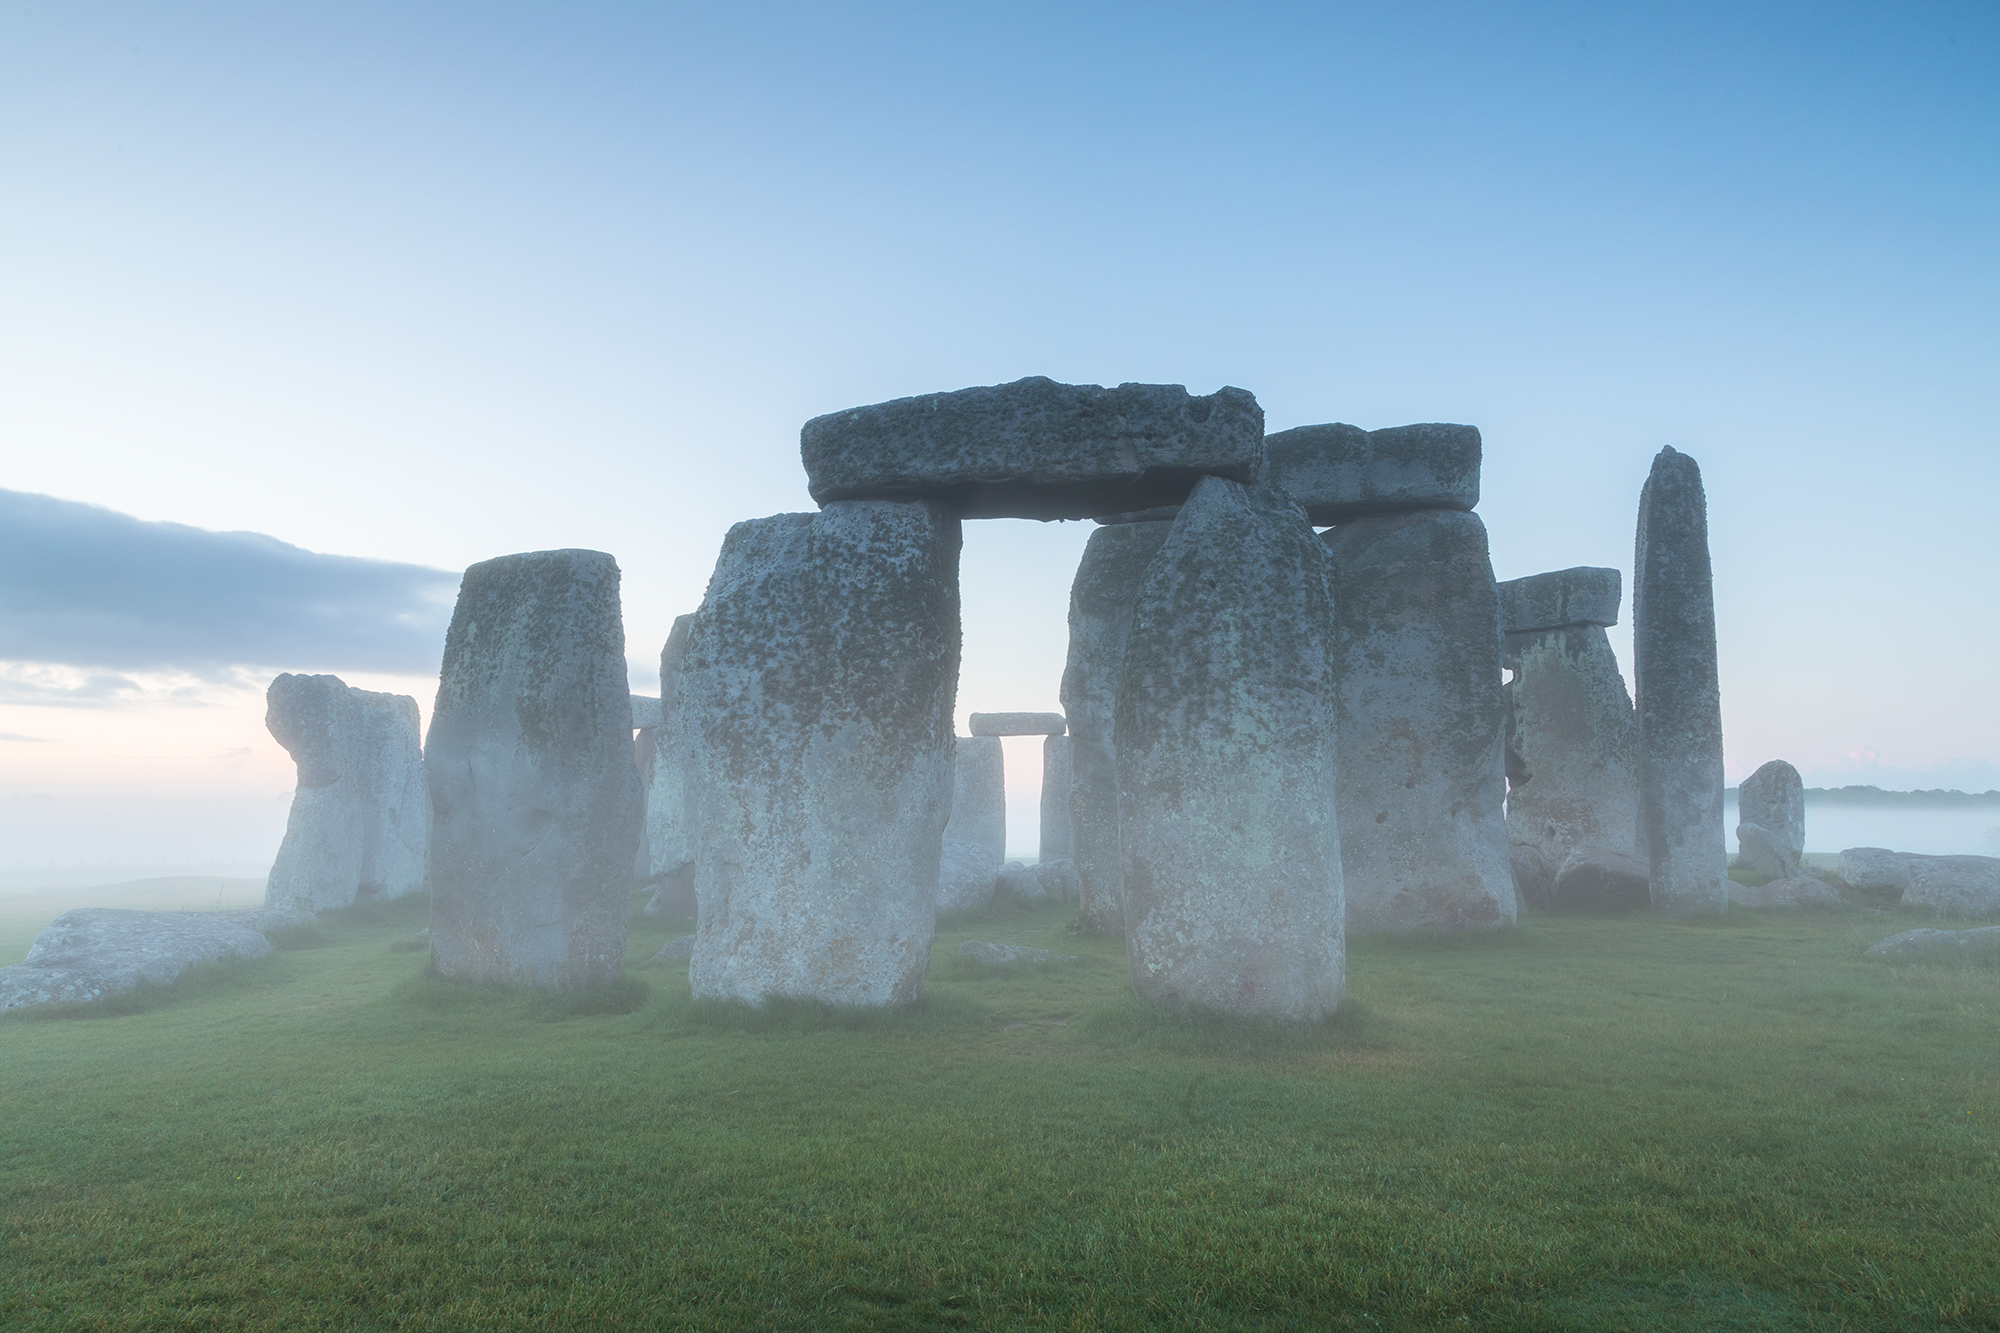 But the best of the trip, was the return morning to Stonehenge. We arrive to a layer of fog that hovered over the stones. Our second private session was more magical than any of us could have hoped for, and it just kept getting better.